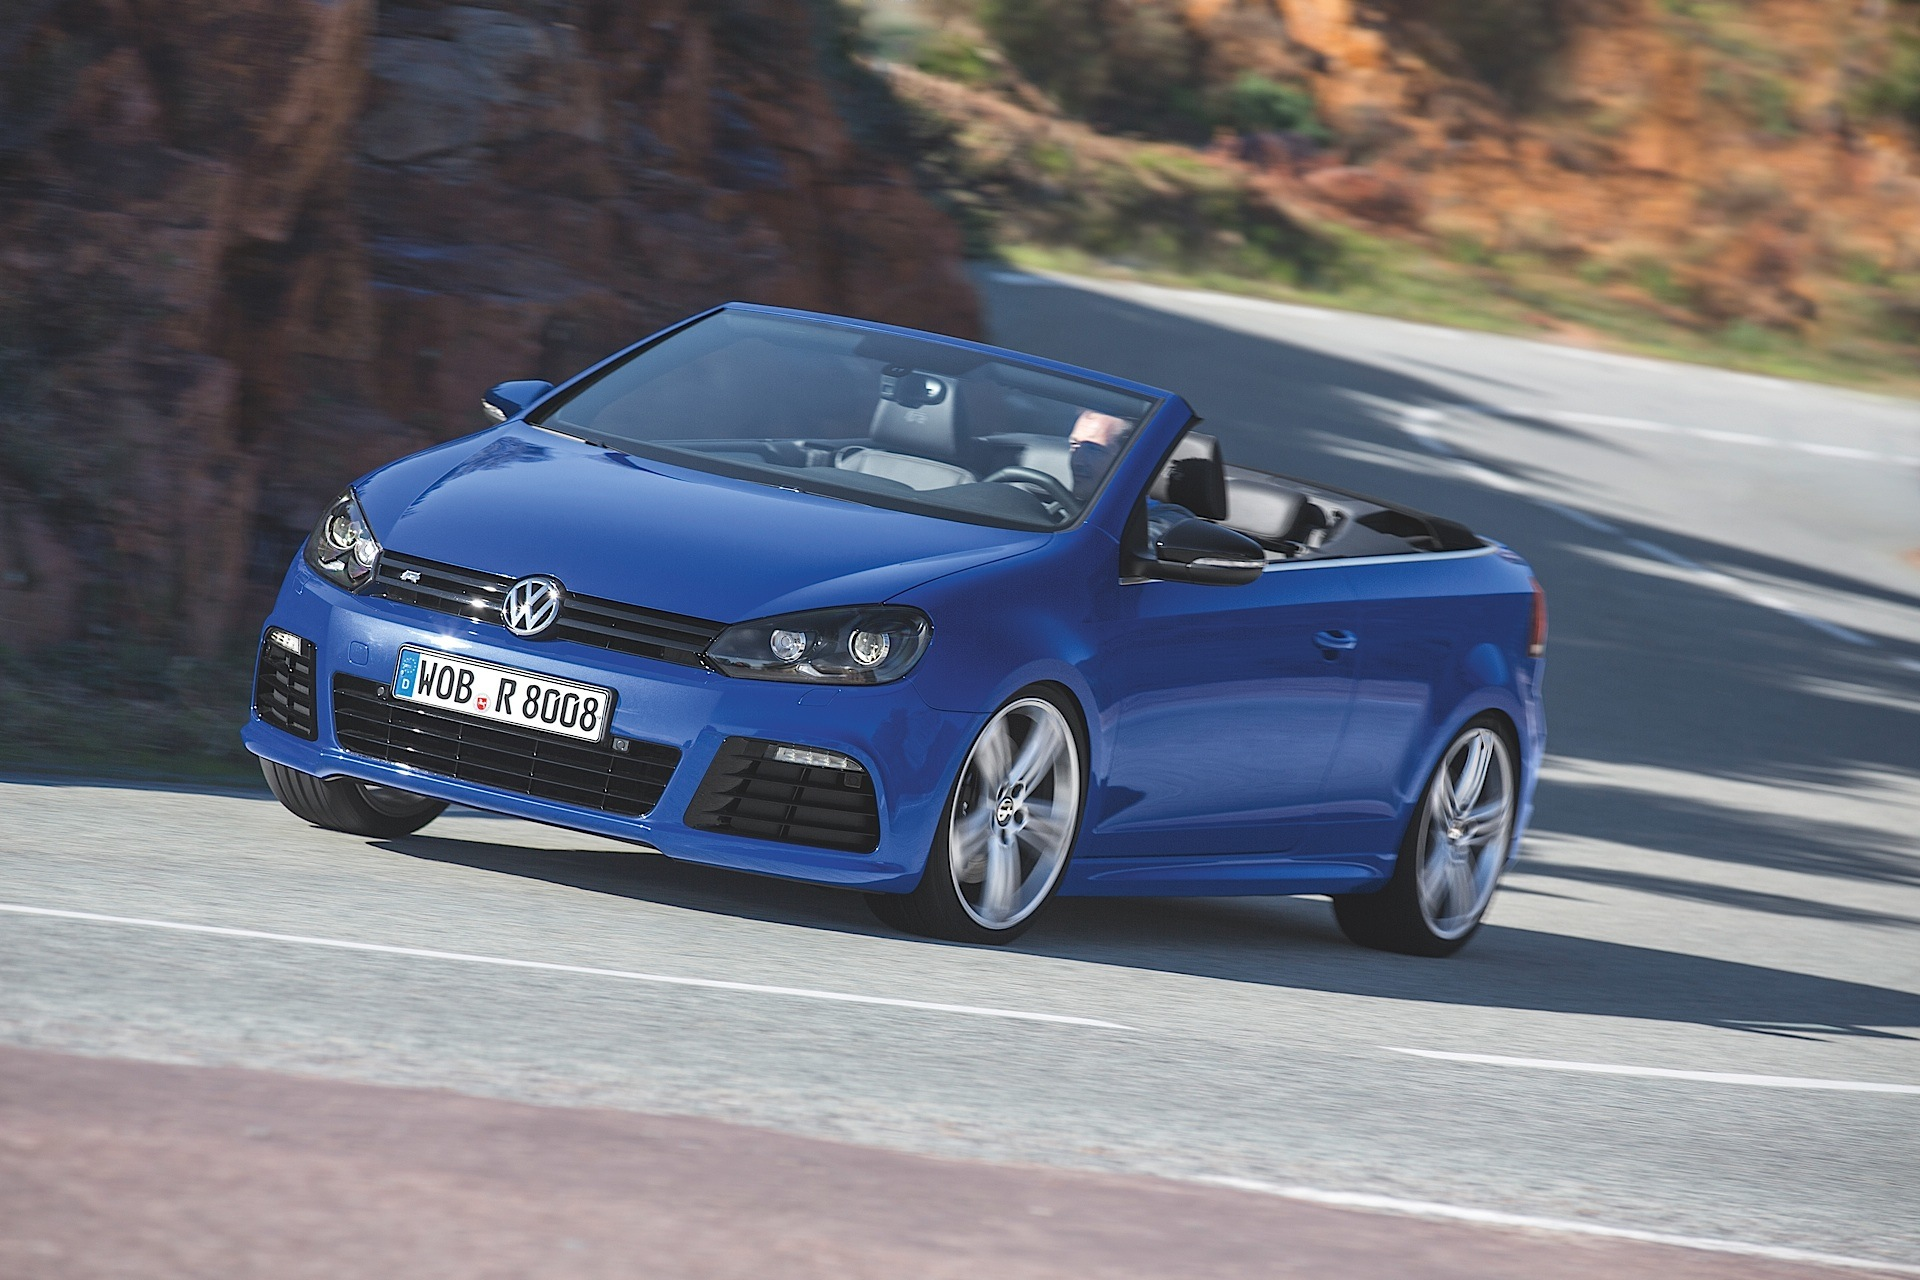 volkswagen golf vi r cabrio specs photos 2013 2014. Black Bedroom Furniture Sets. Home Design Ideas